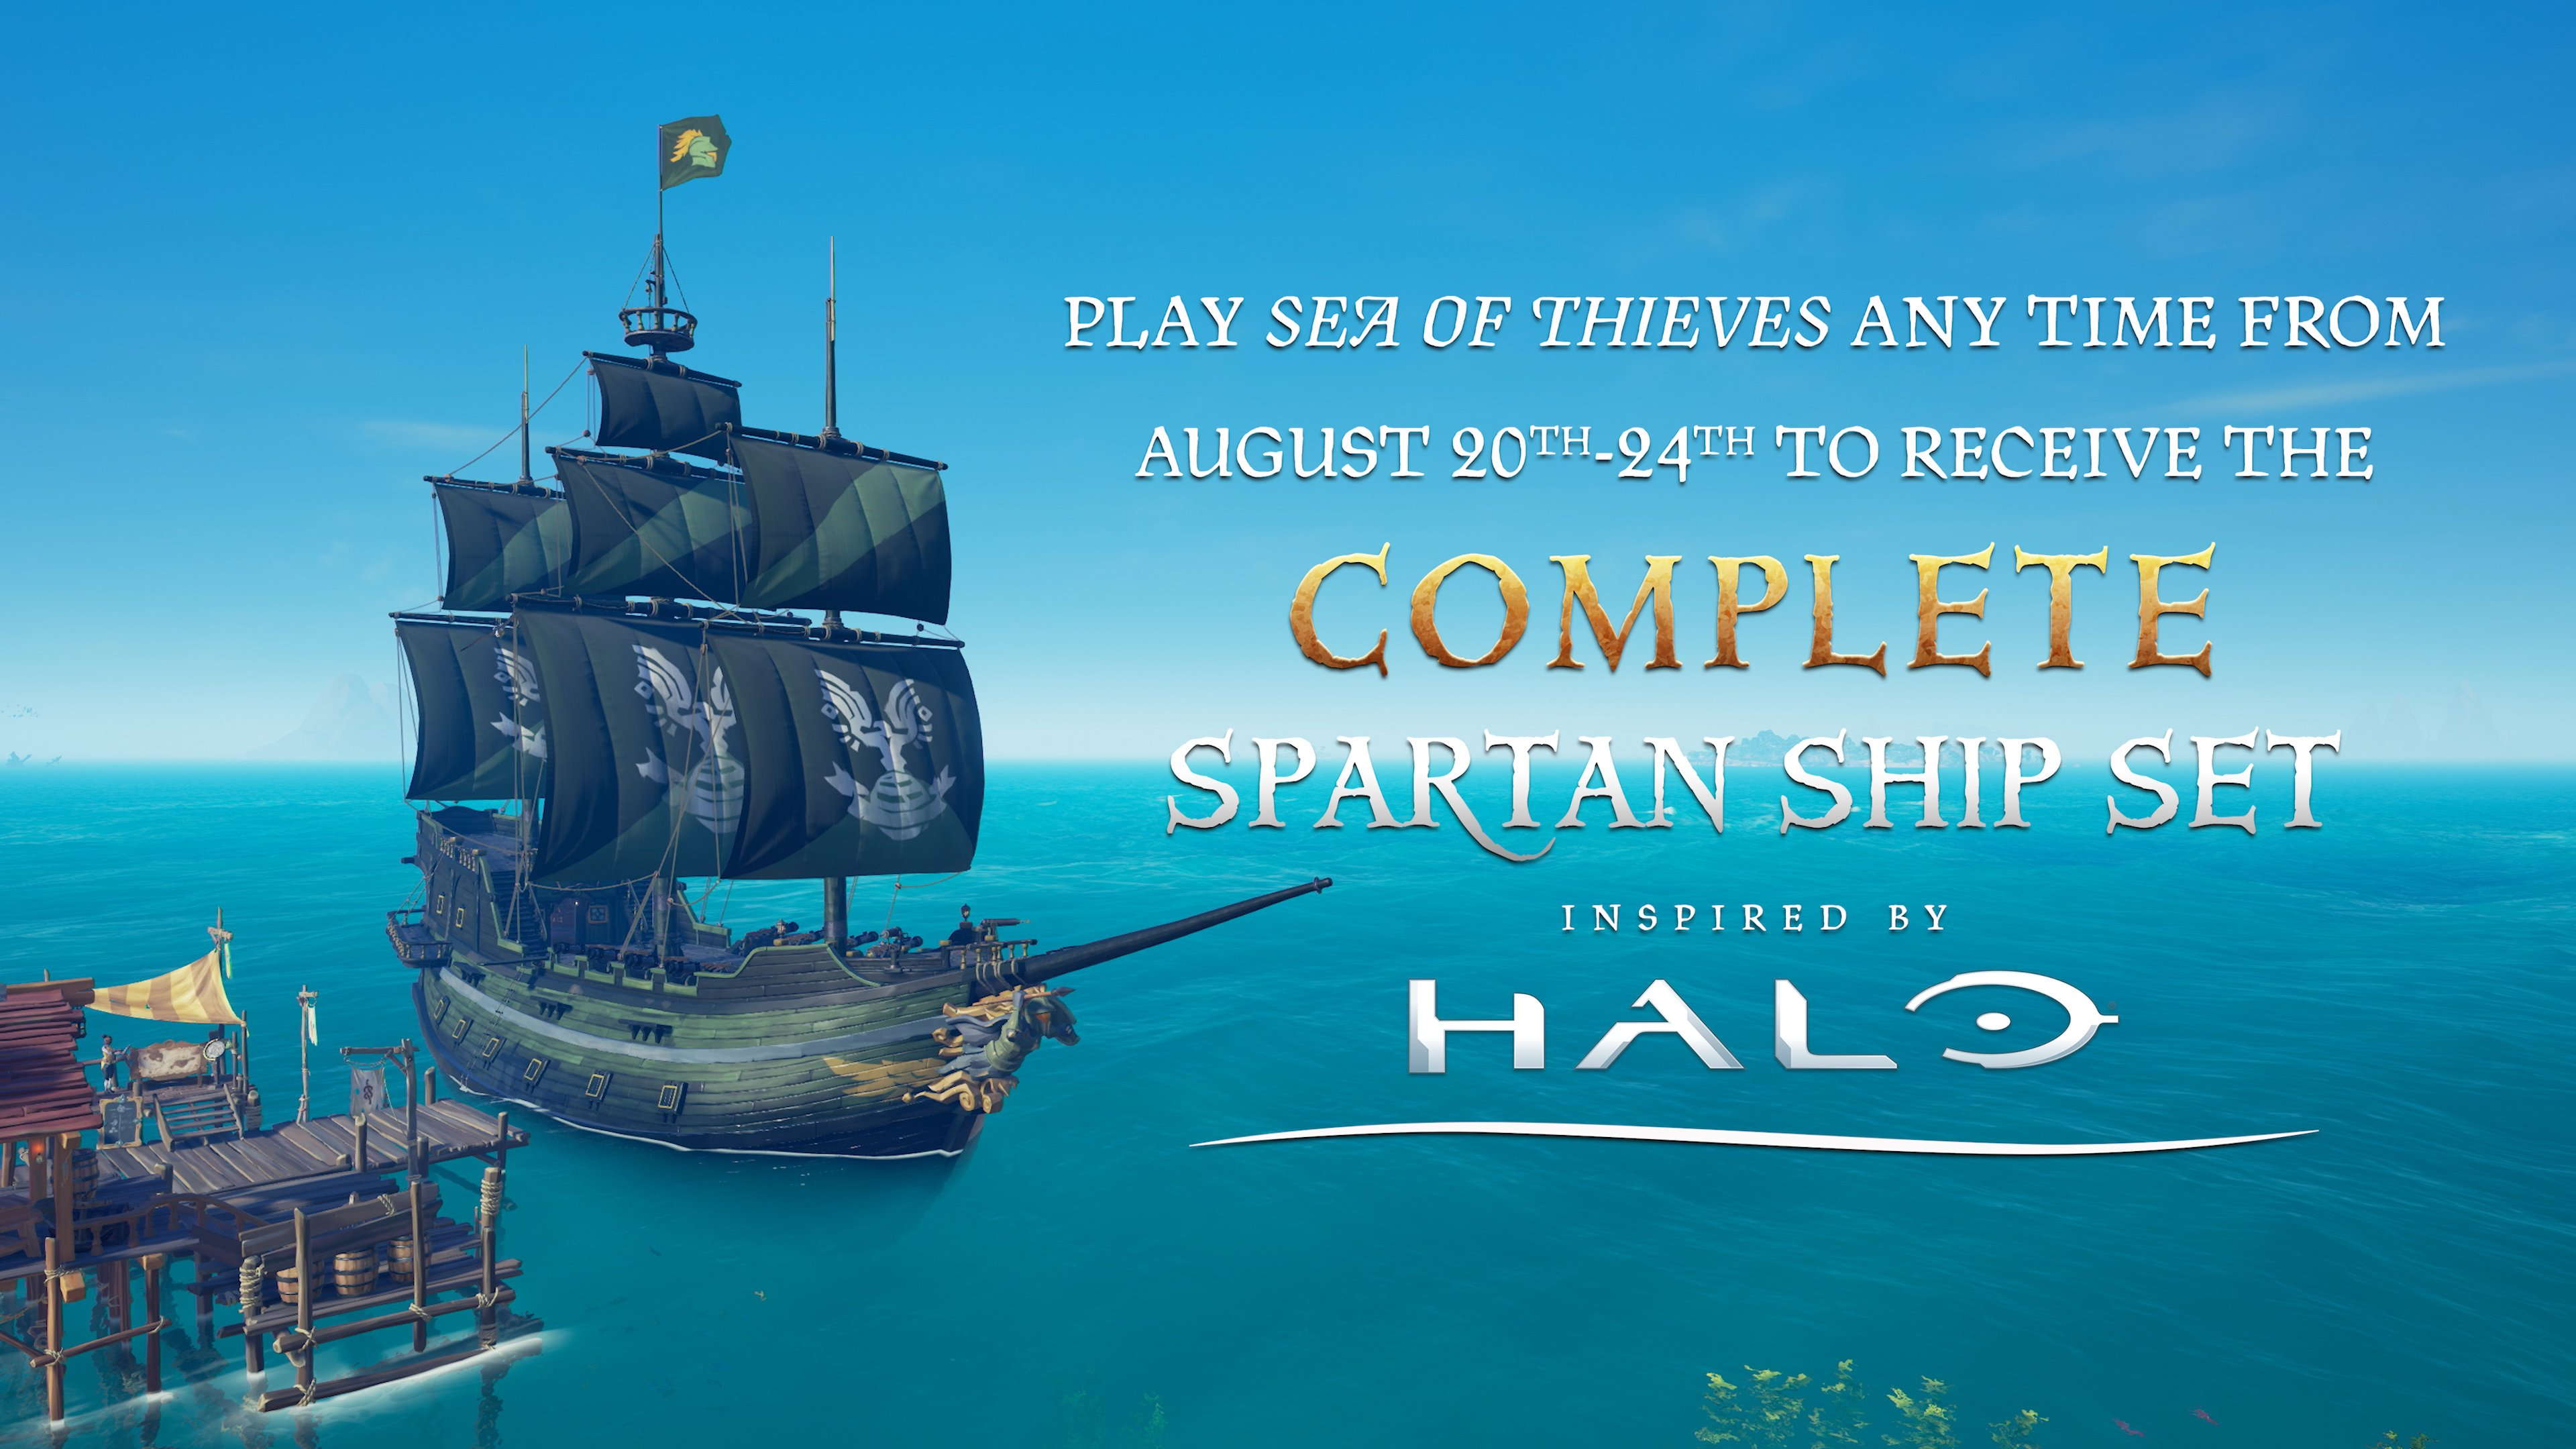 Sea of Thieves gets a free 'Halo inspired' Spartan ship set, but you have to be quick | PC Gamer